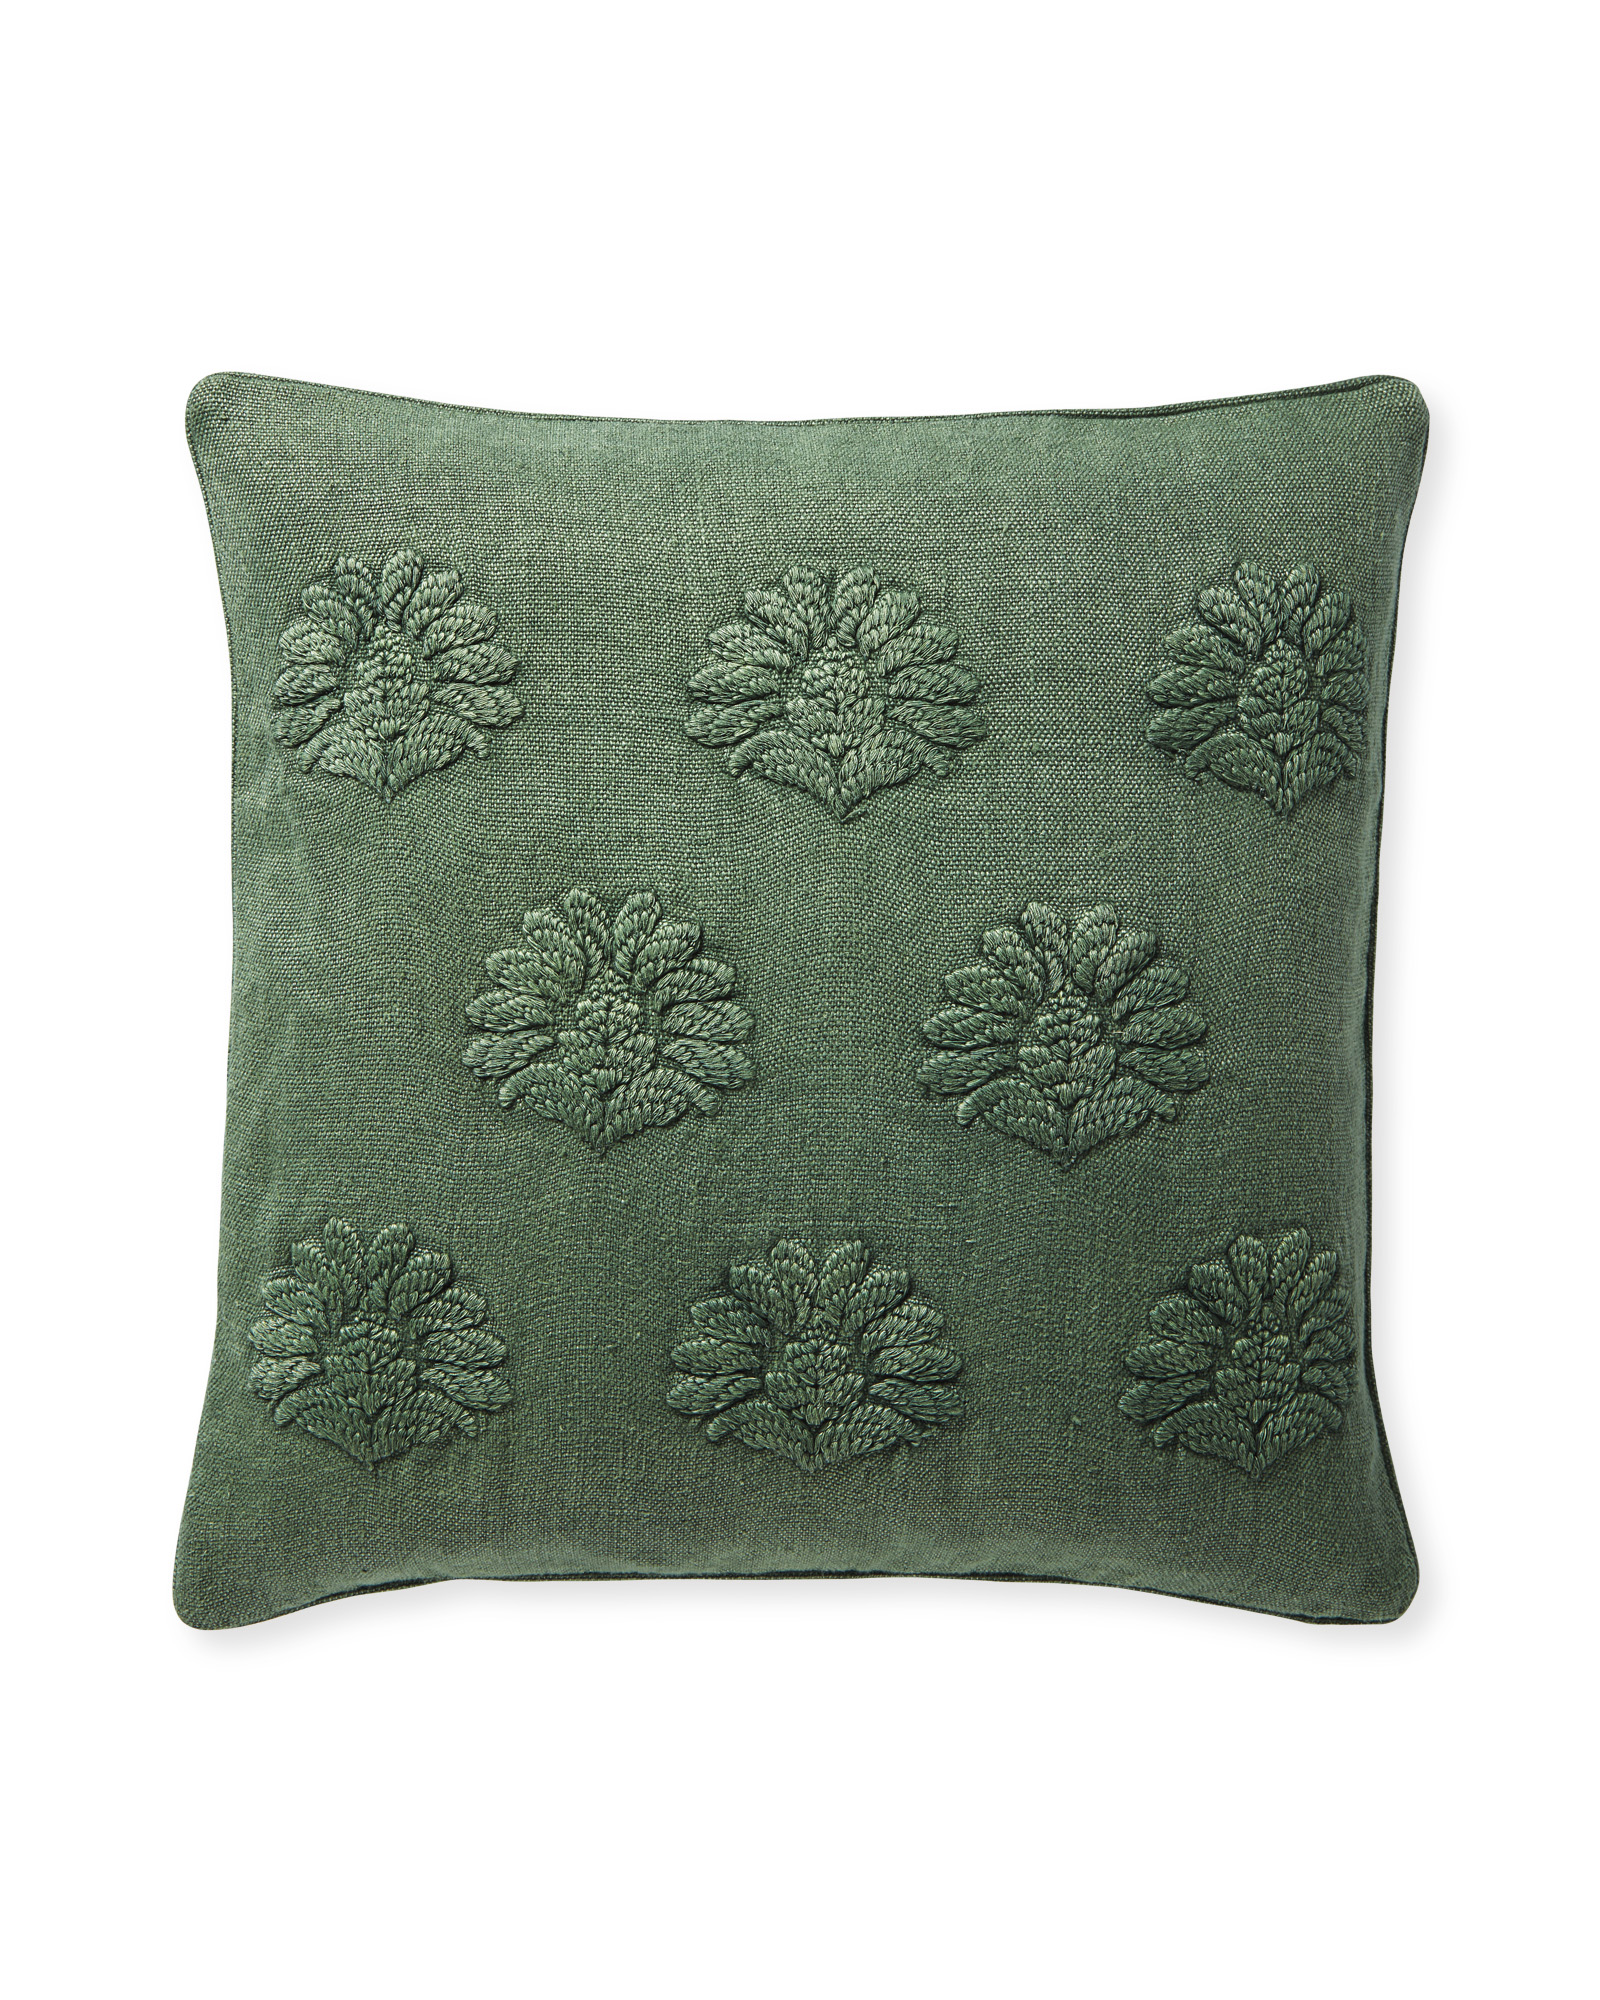 Miramonte Pillow Cover, Moss